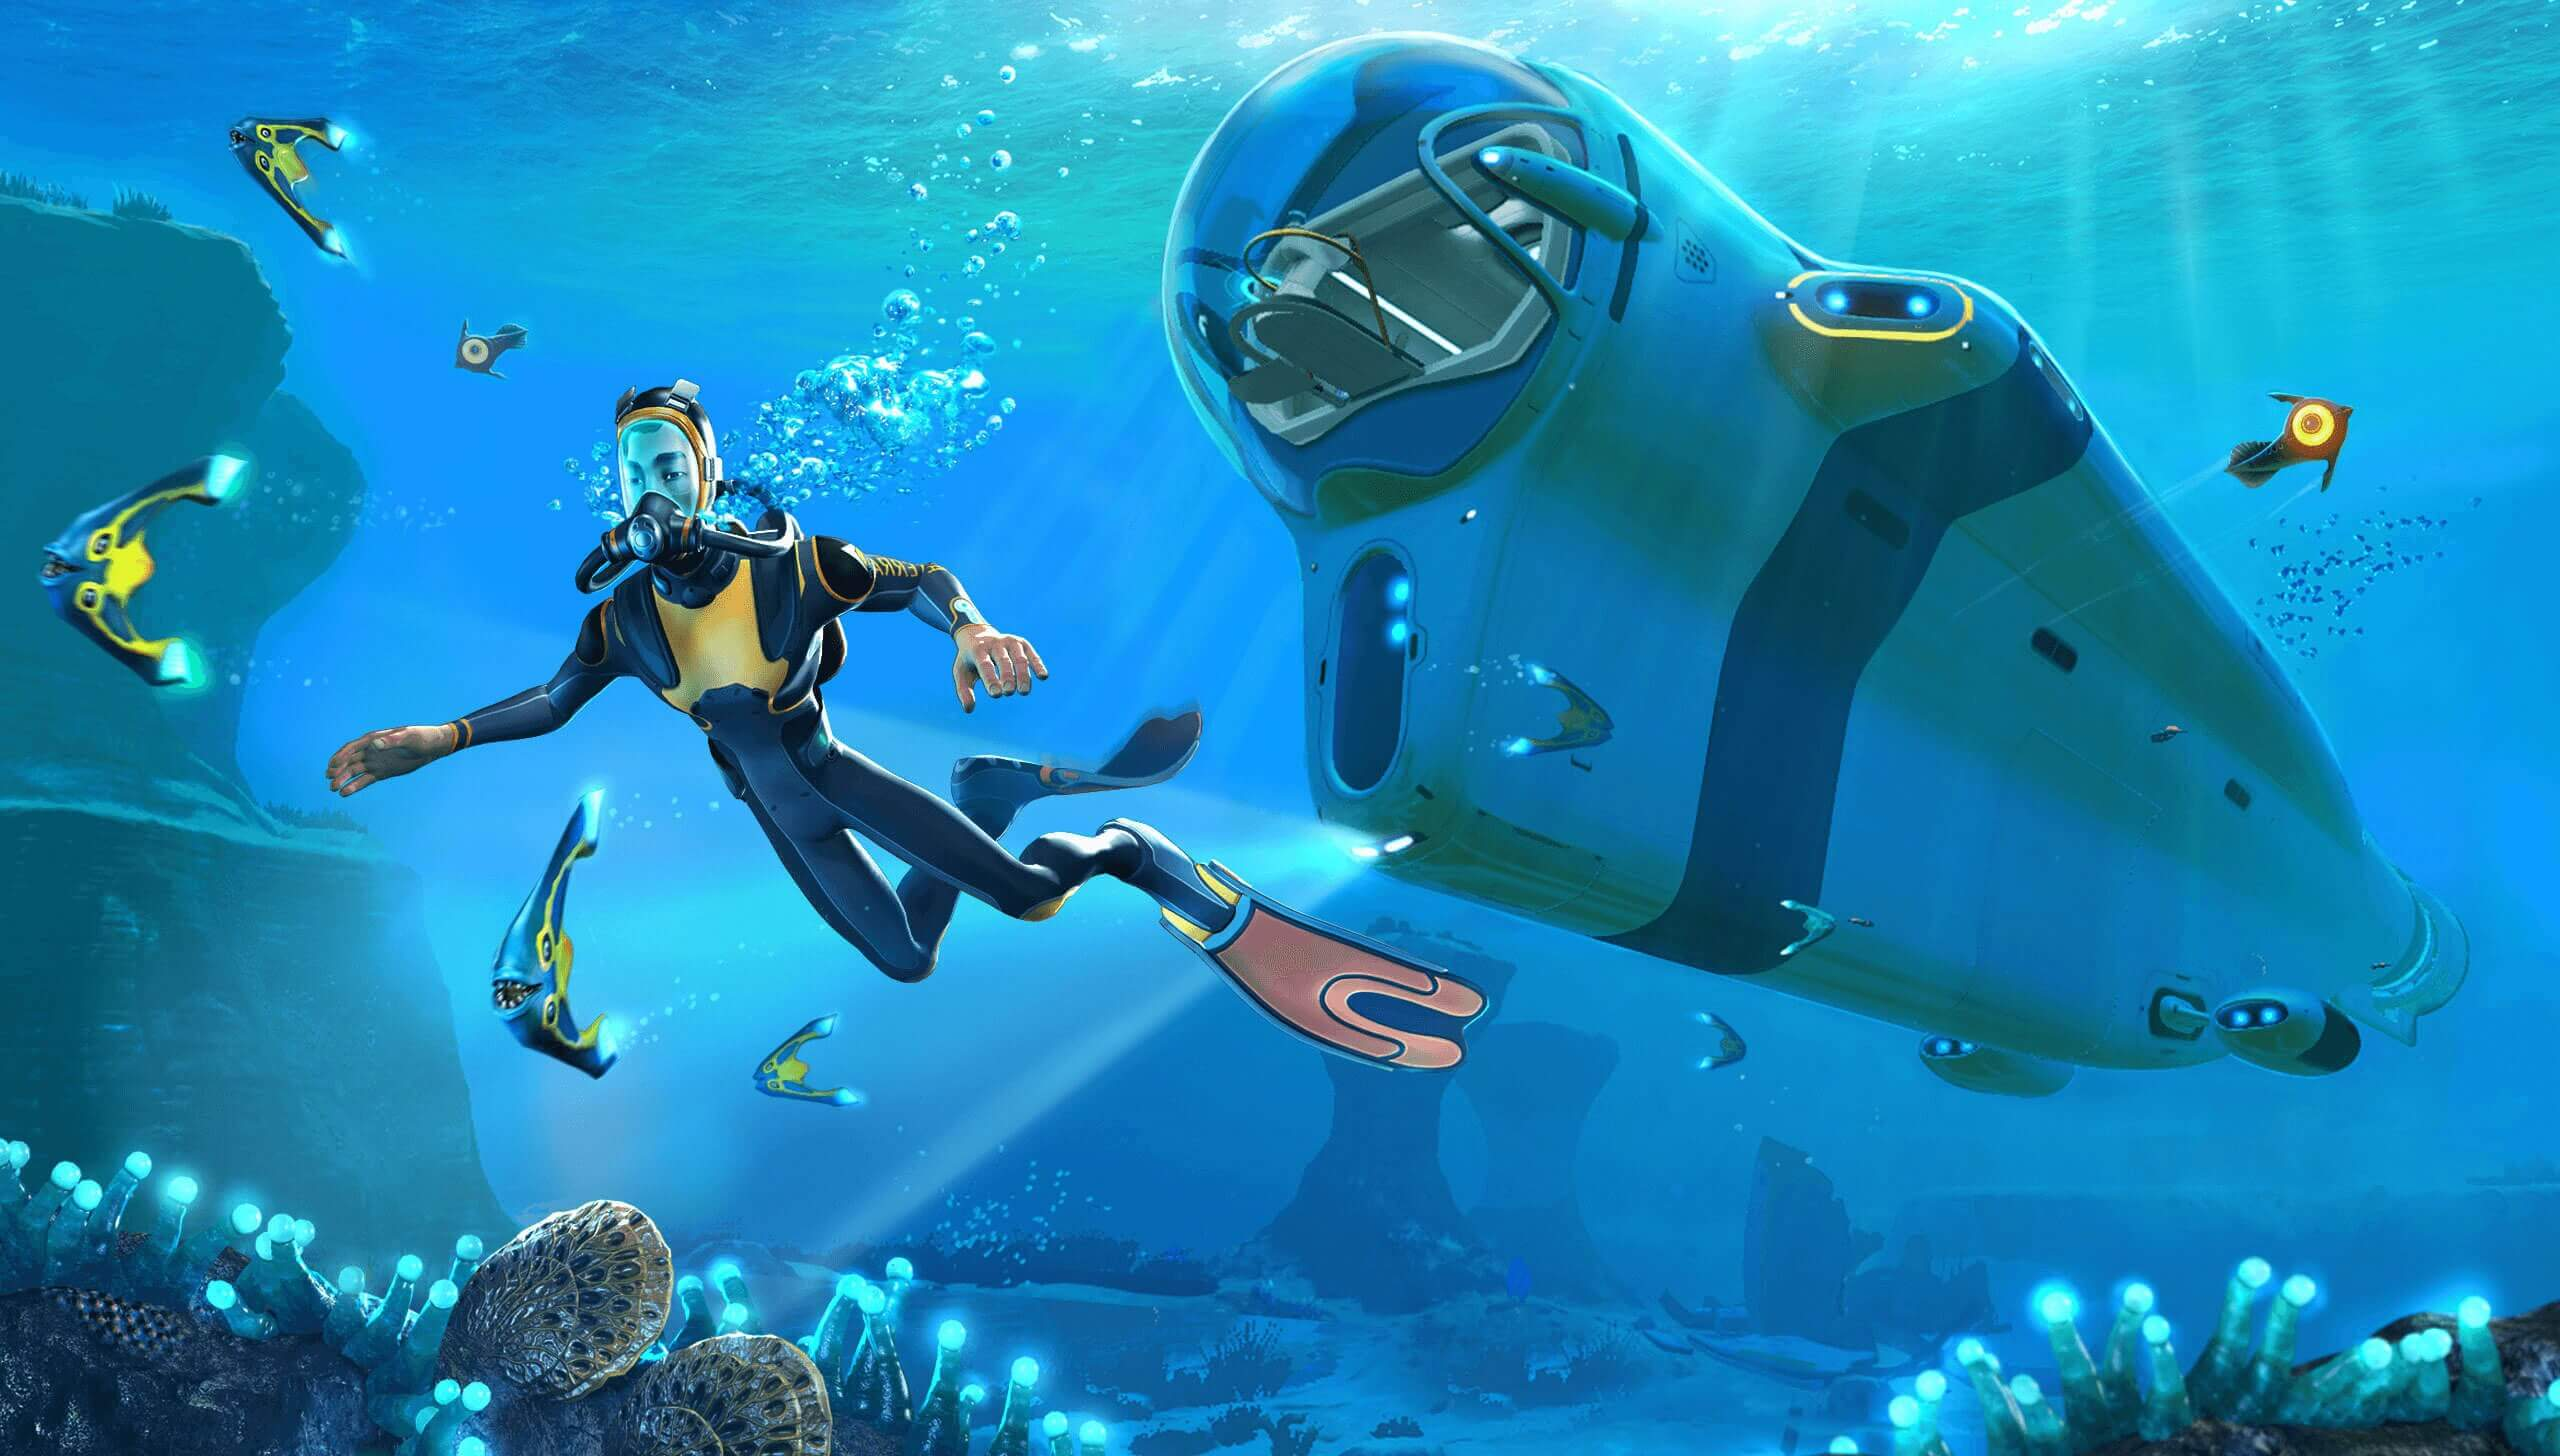 Nintendo Switch gets two Subnautica ports in 2021